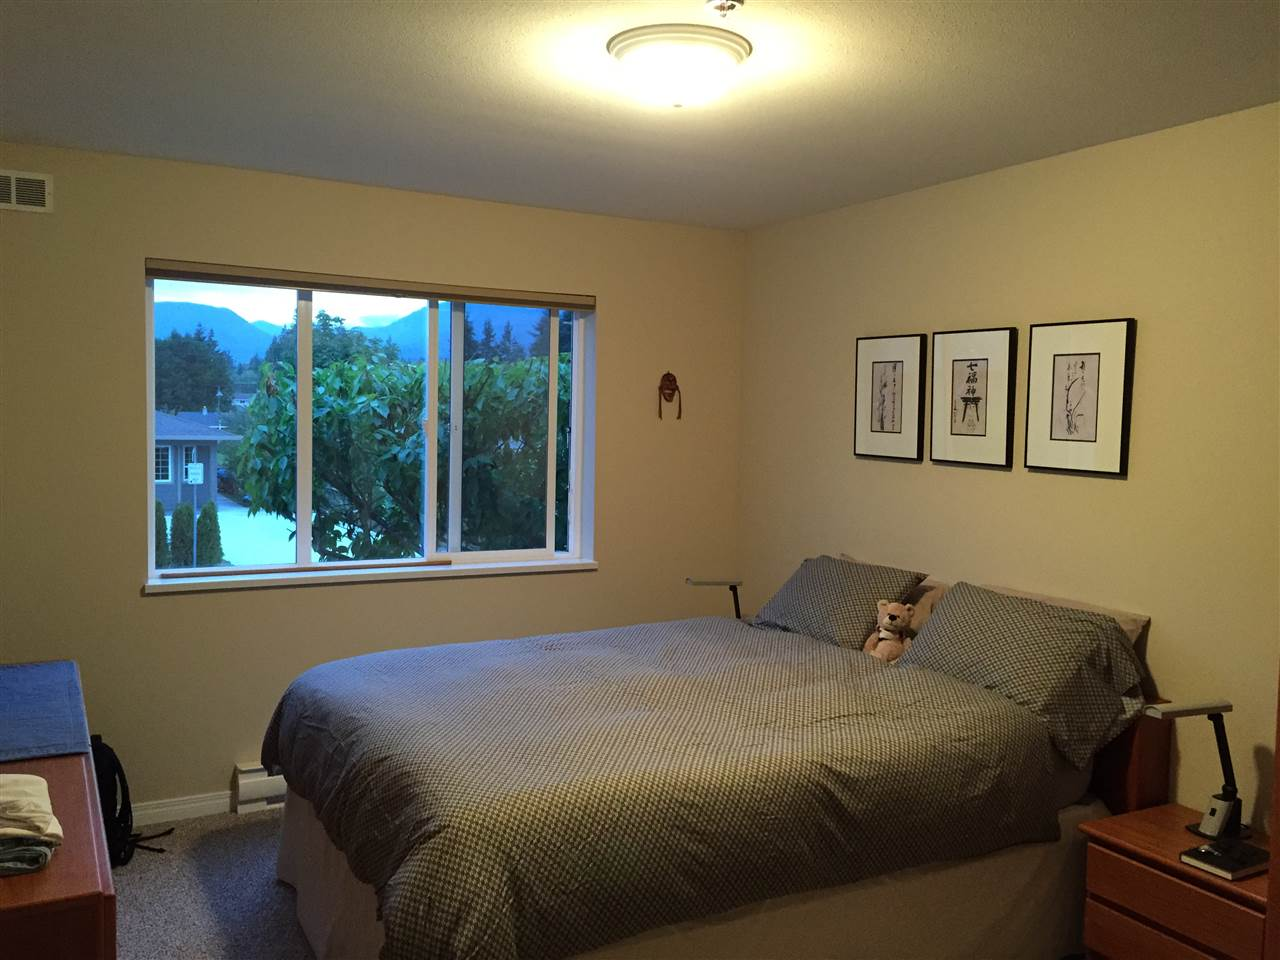 Photo 9: 207 5711 MERMAID STREET in Sechelt: Sechelt District Condo for sale (Sunshine Coast)  : MLS® # R2104837